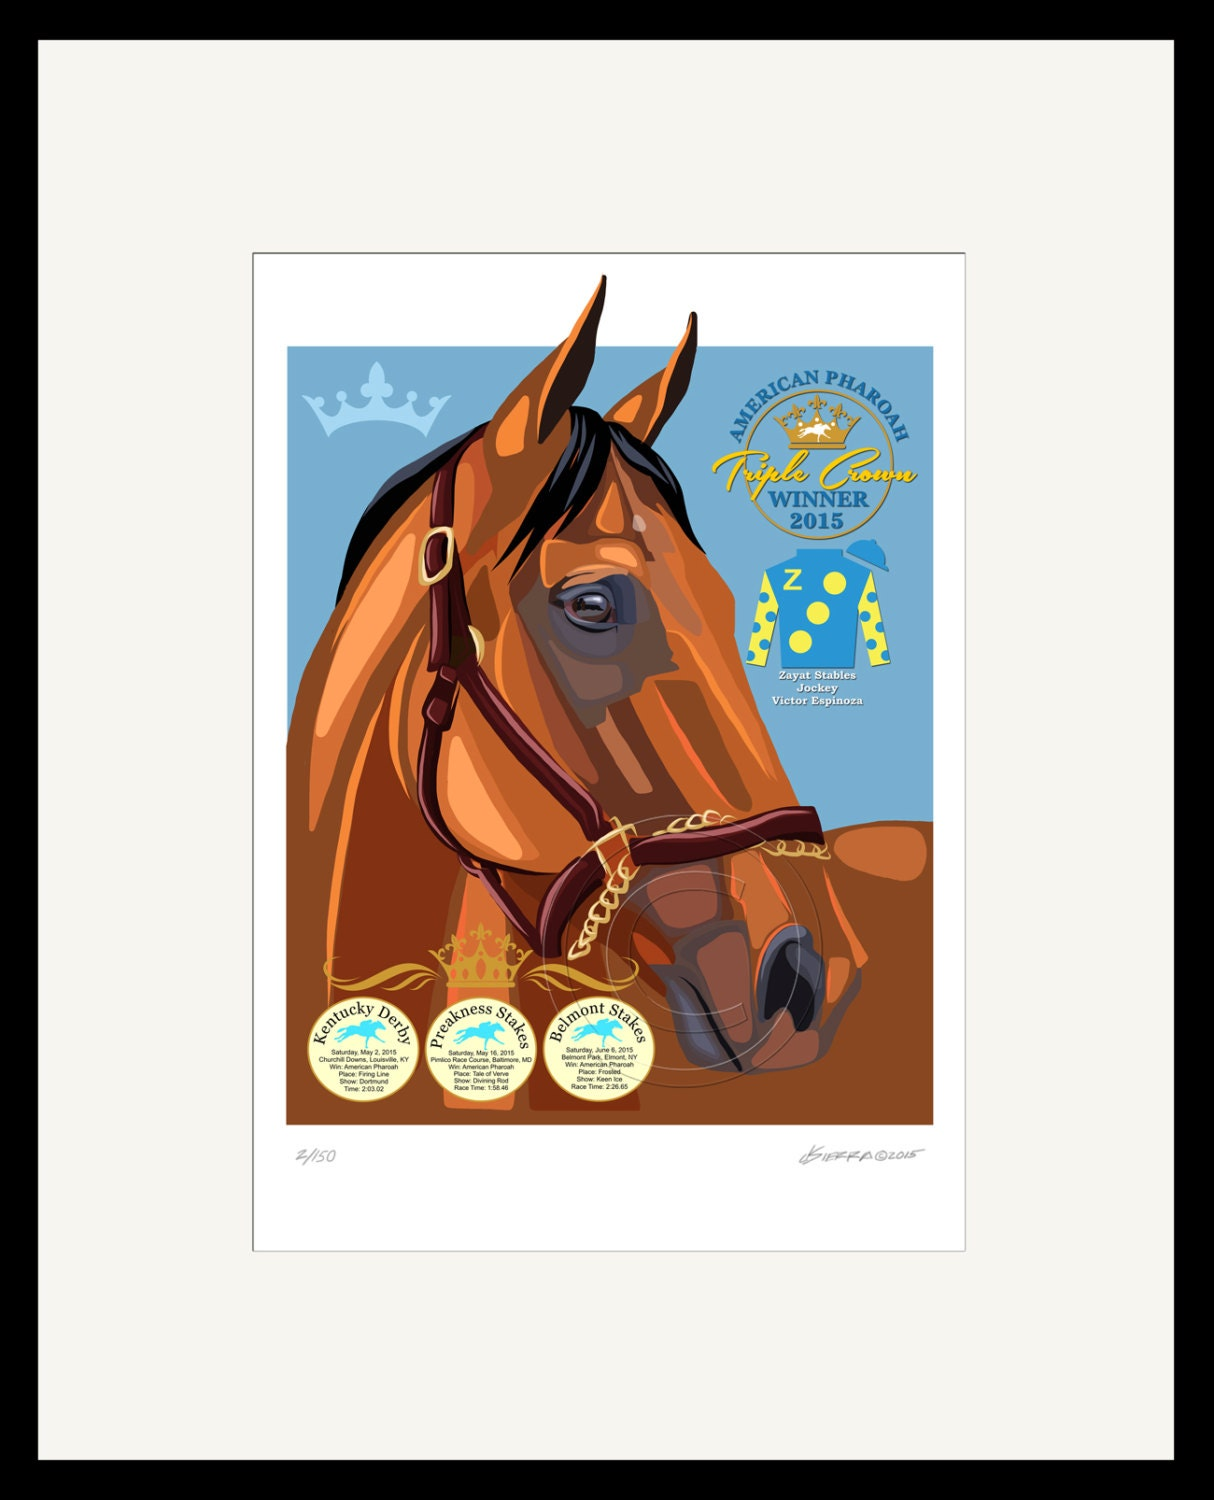 American Pharoah Commemorative Art Print Digital Painting